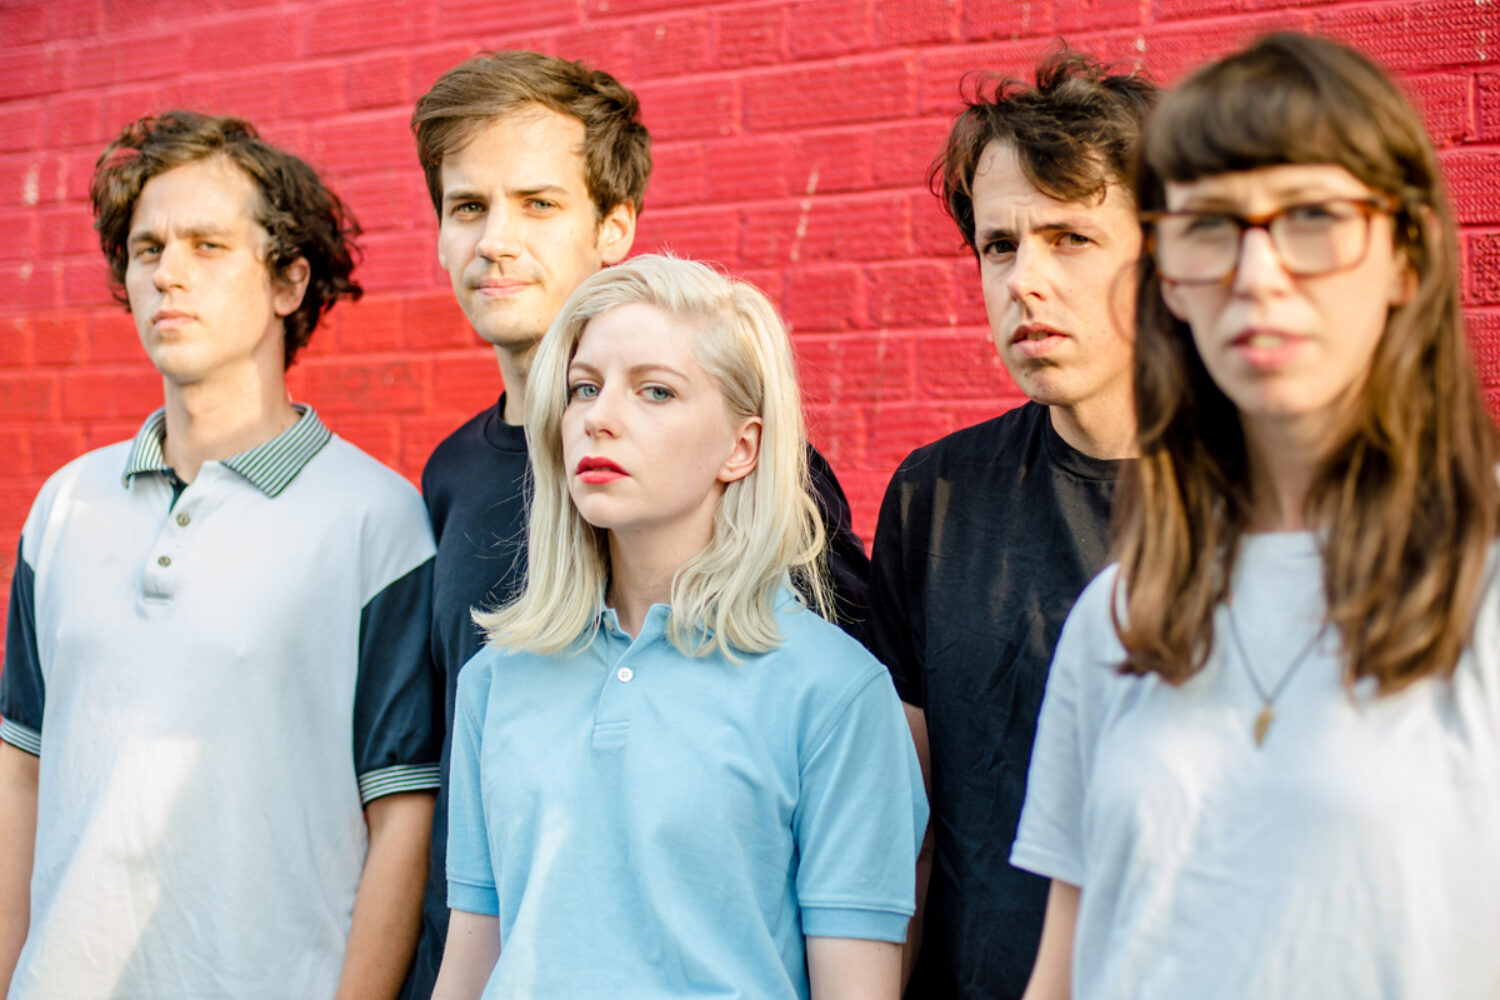 Polaris Music Prize reveals long list of nominees including Drake, Alvvays, Caribou